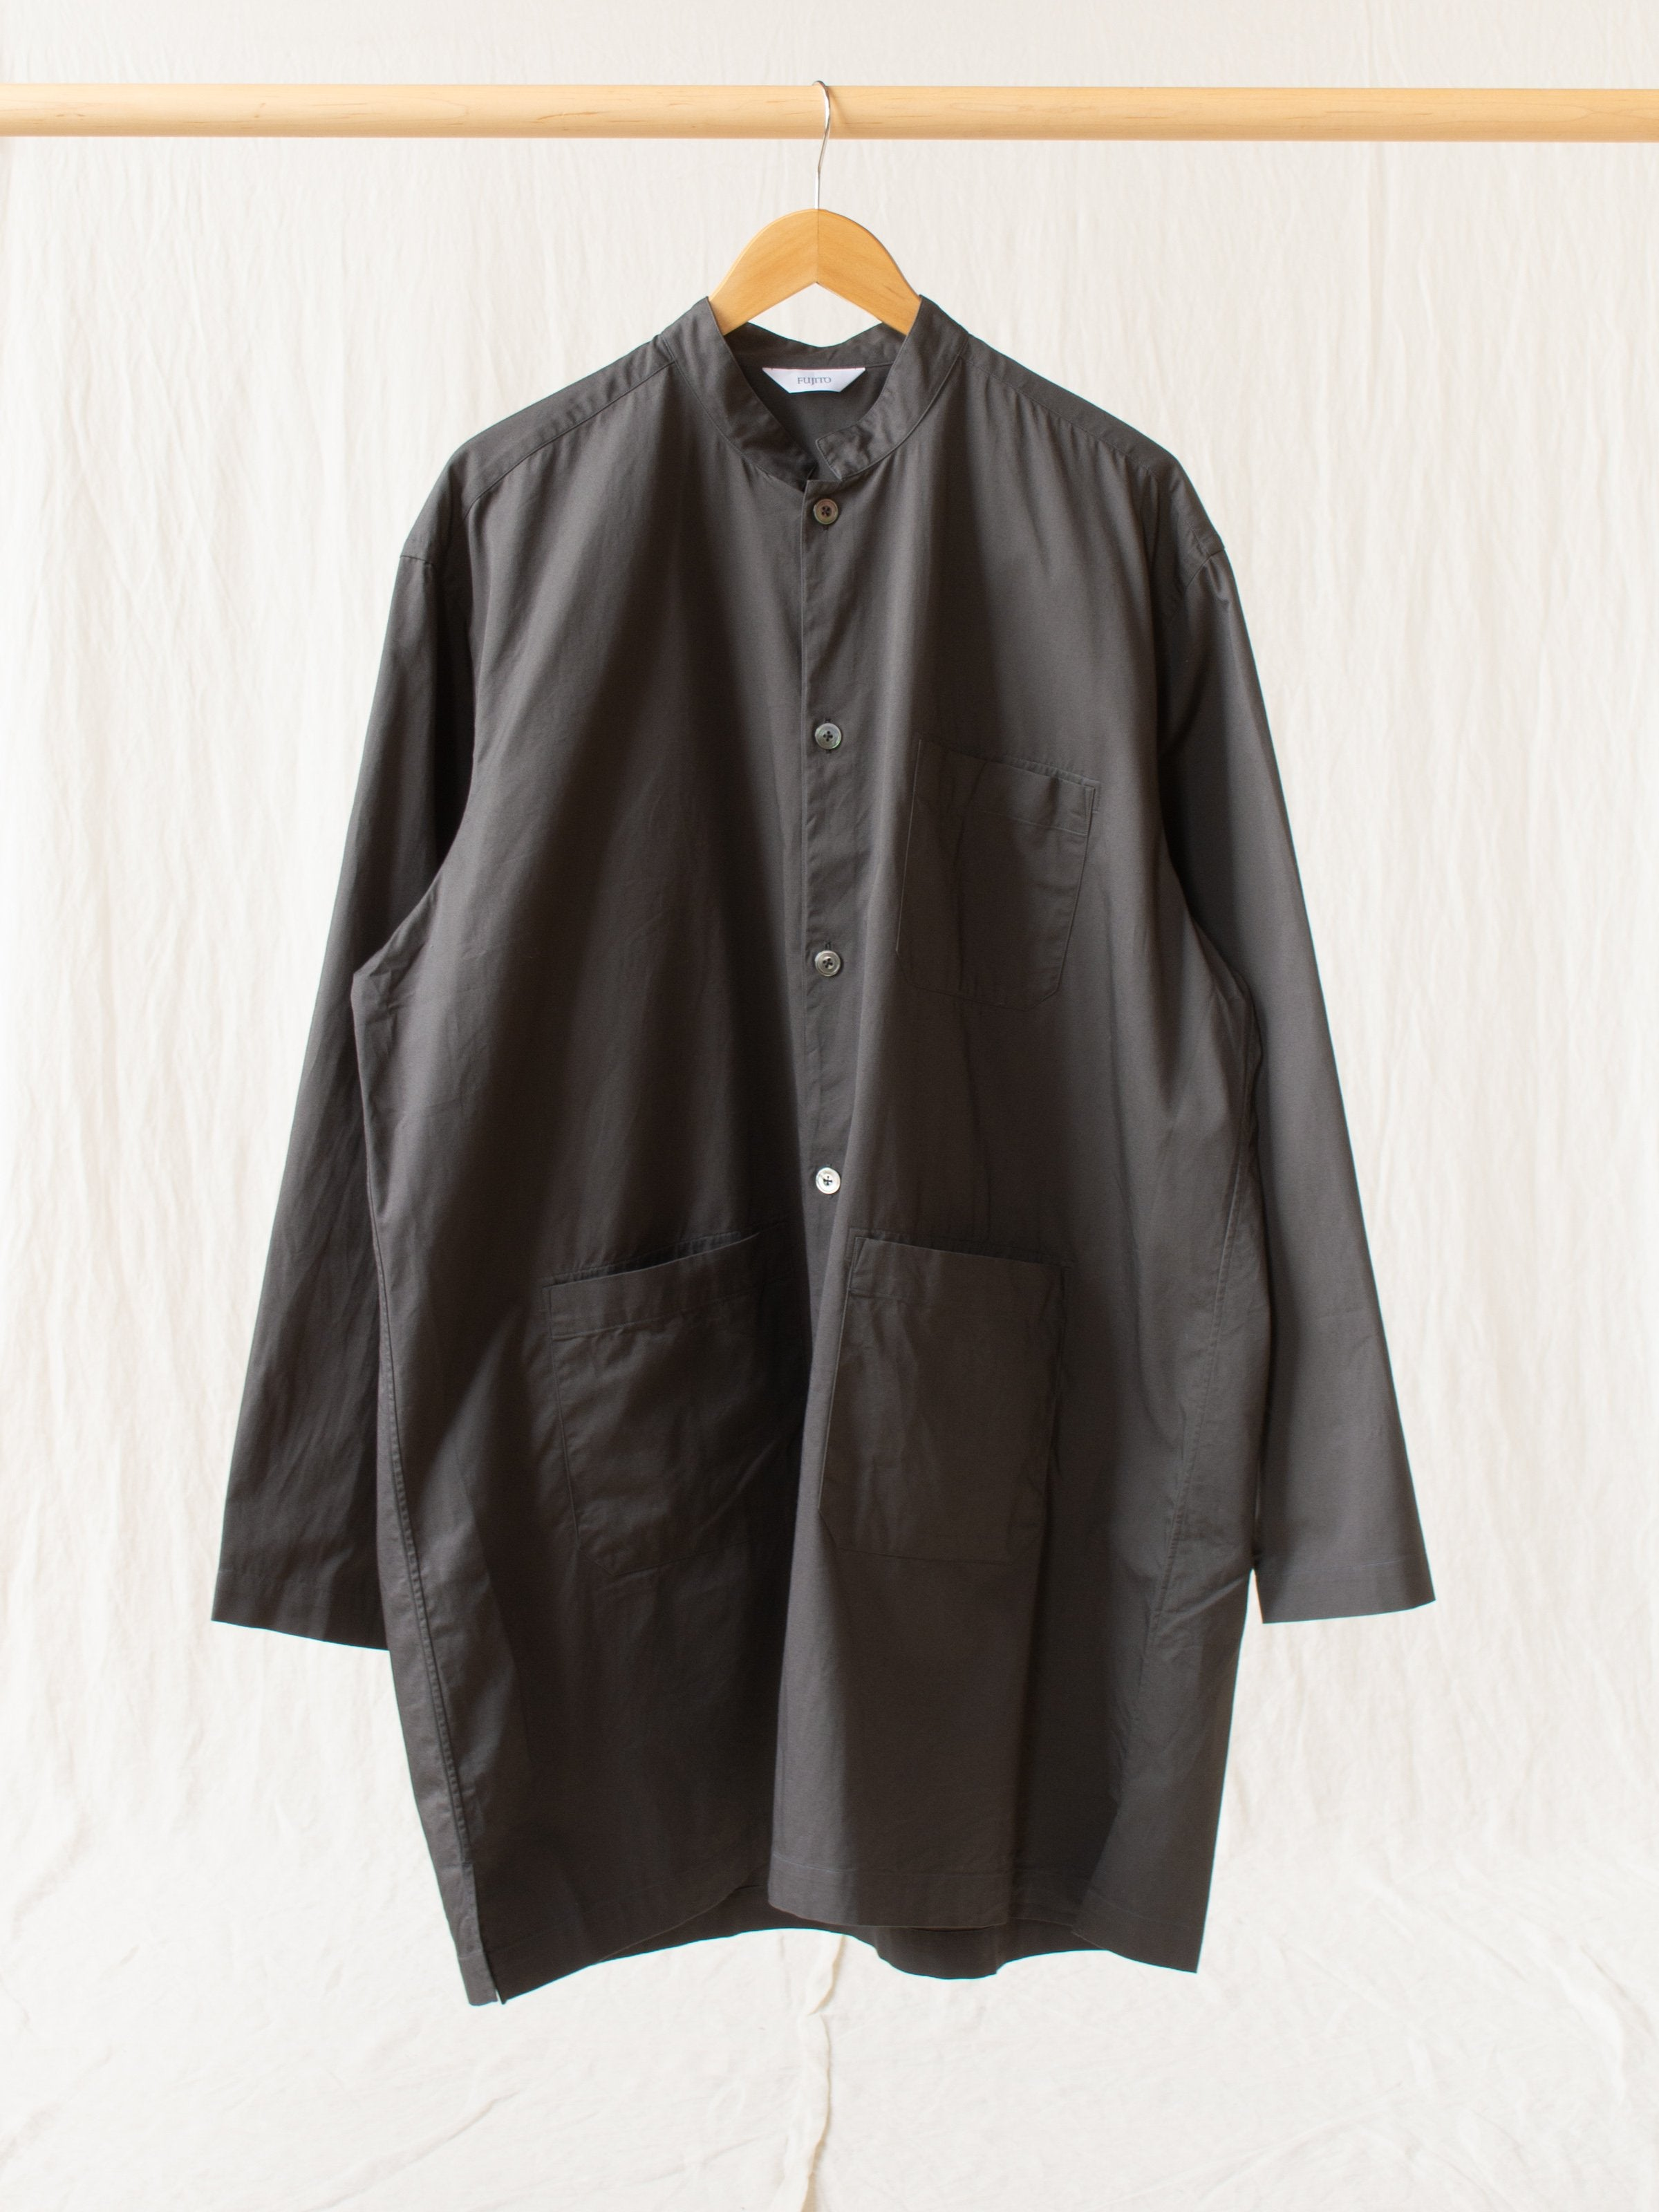 Namu Shop - Fujito Shirt Coat